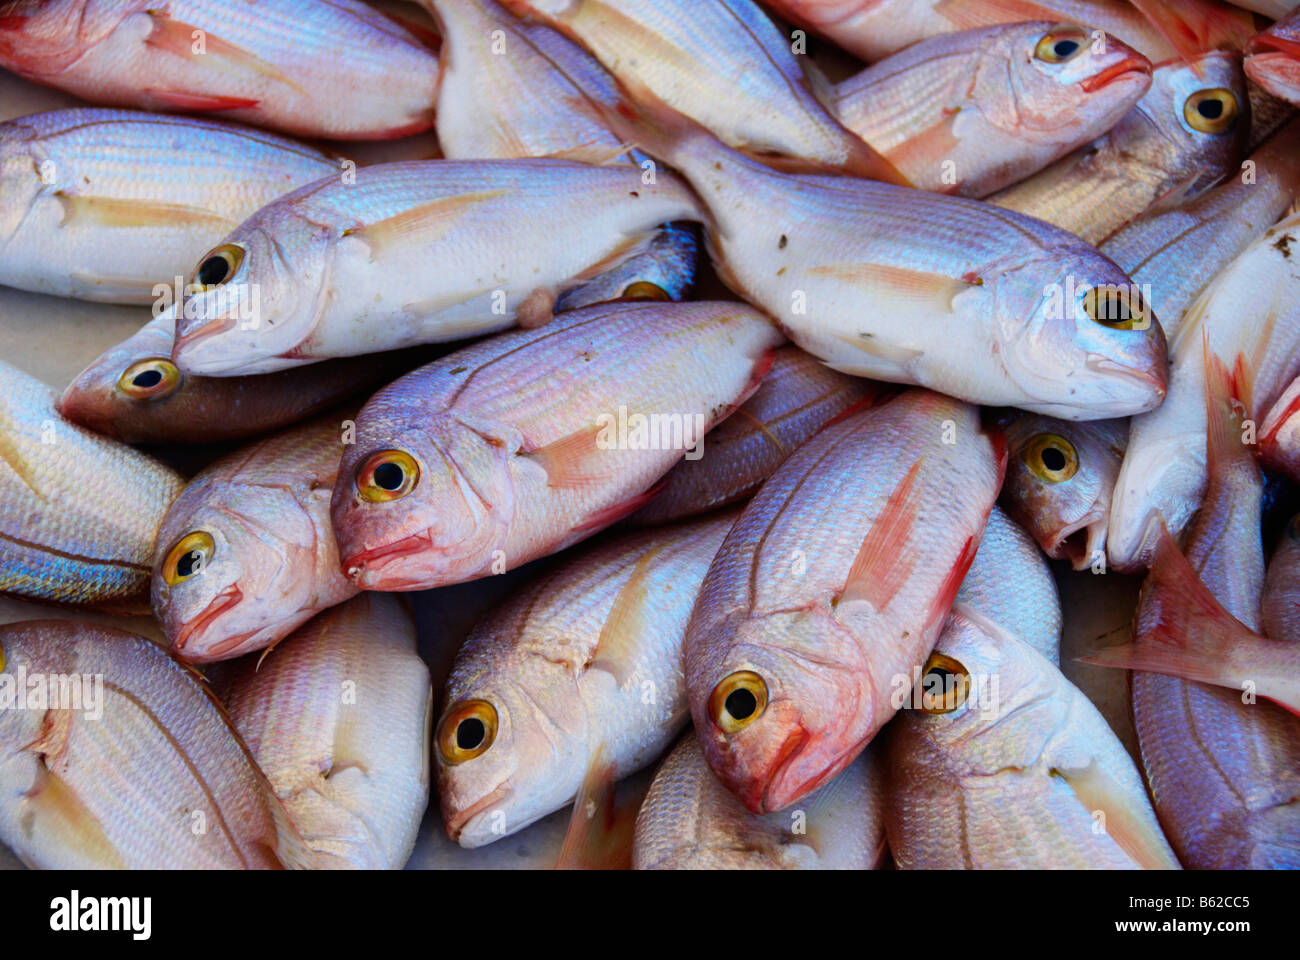 Fish at fish market, Rhodes Island, Greece, Europe - Stock Image